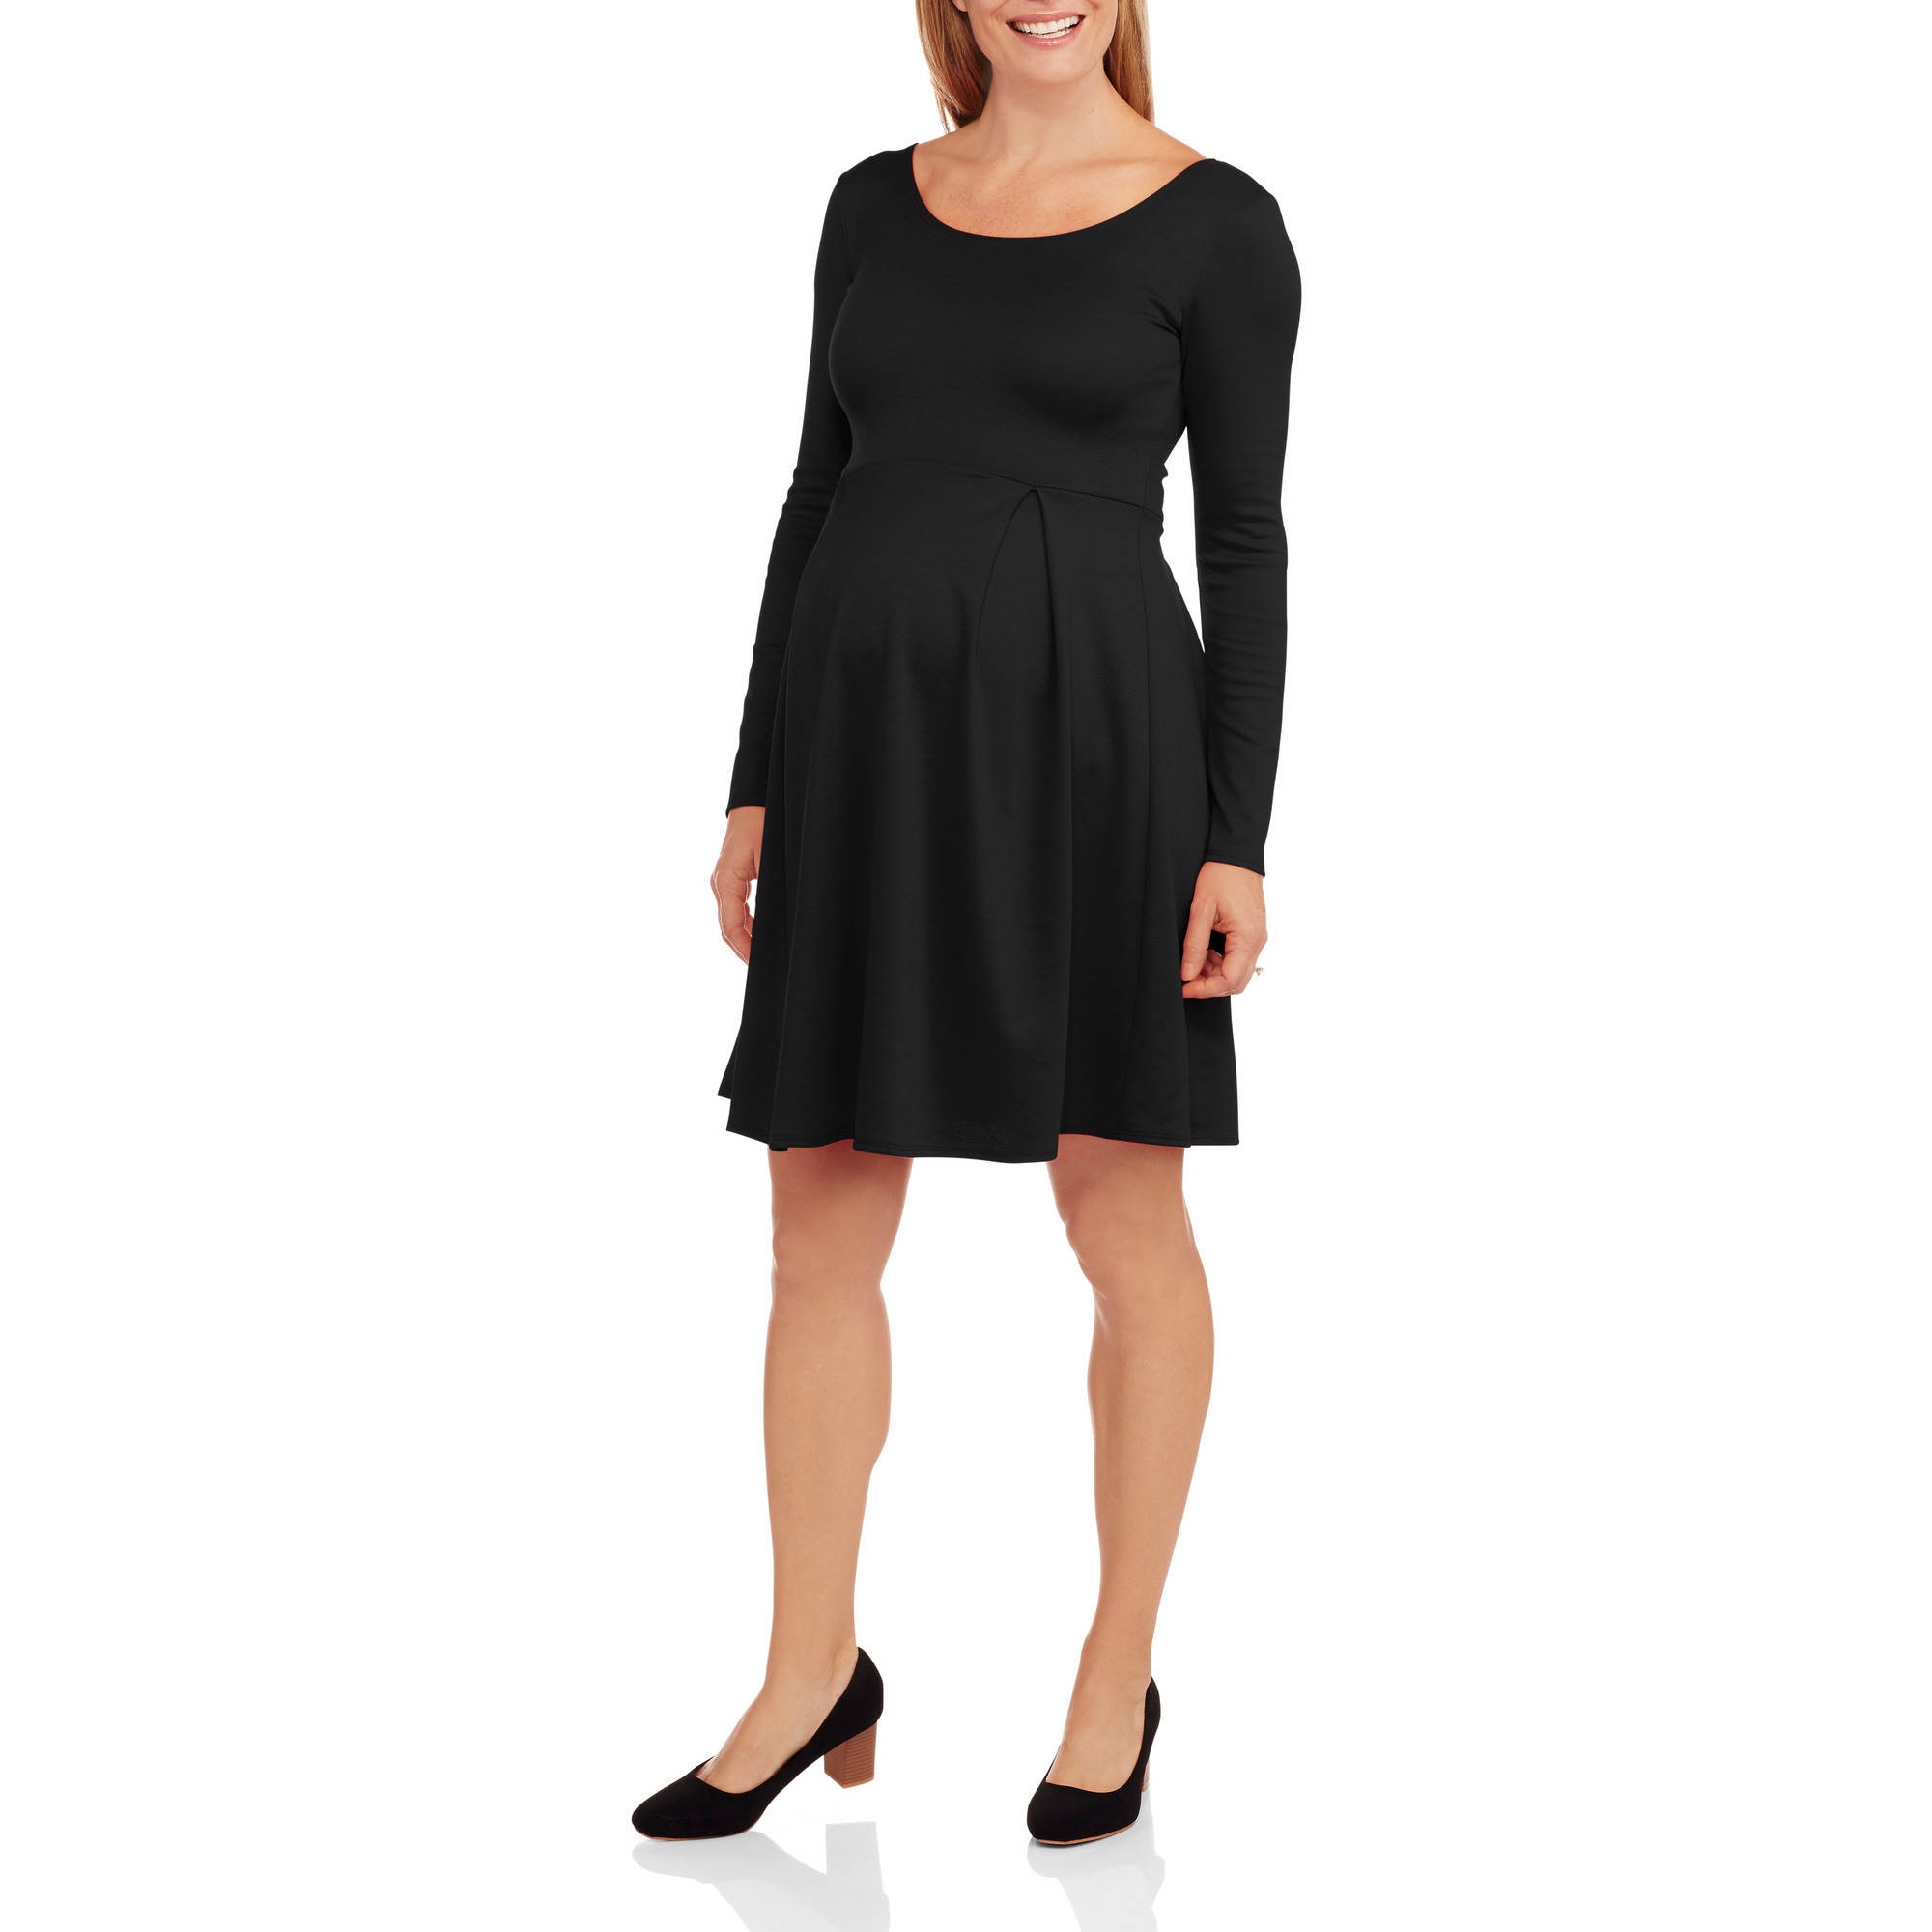 Star Vixen Maternity Long Sleeve Scoop Neck Babydoll Dress